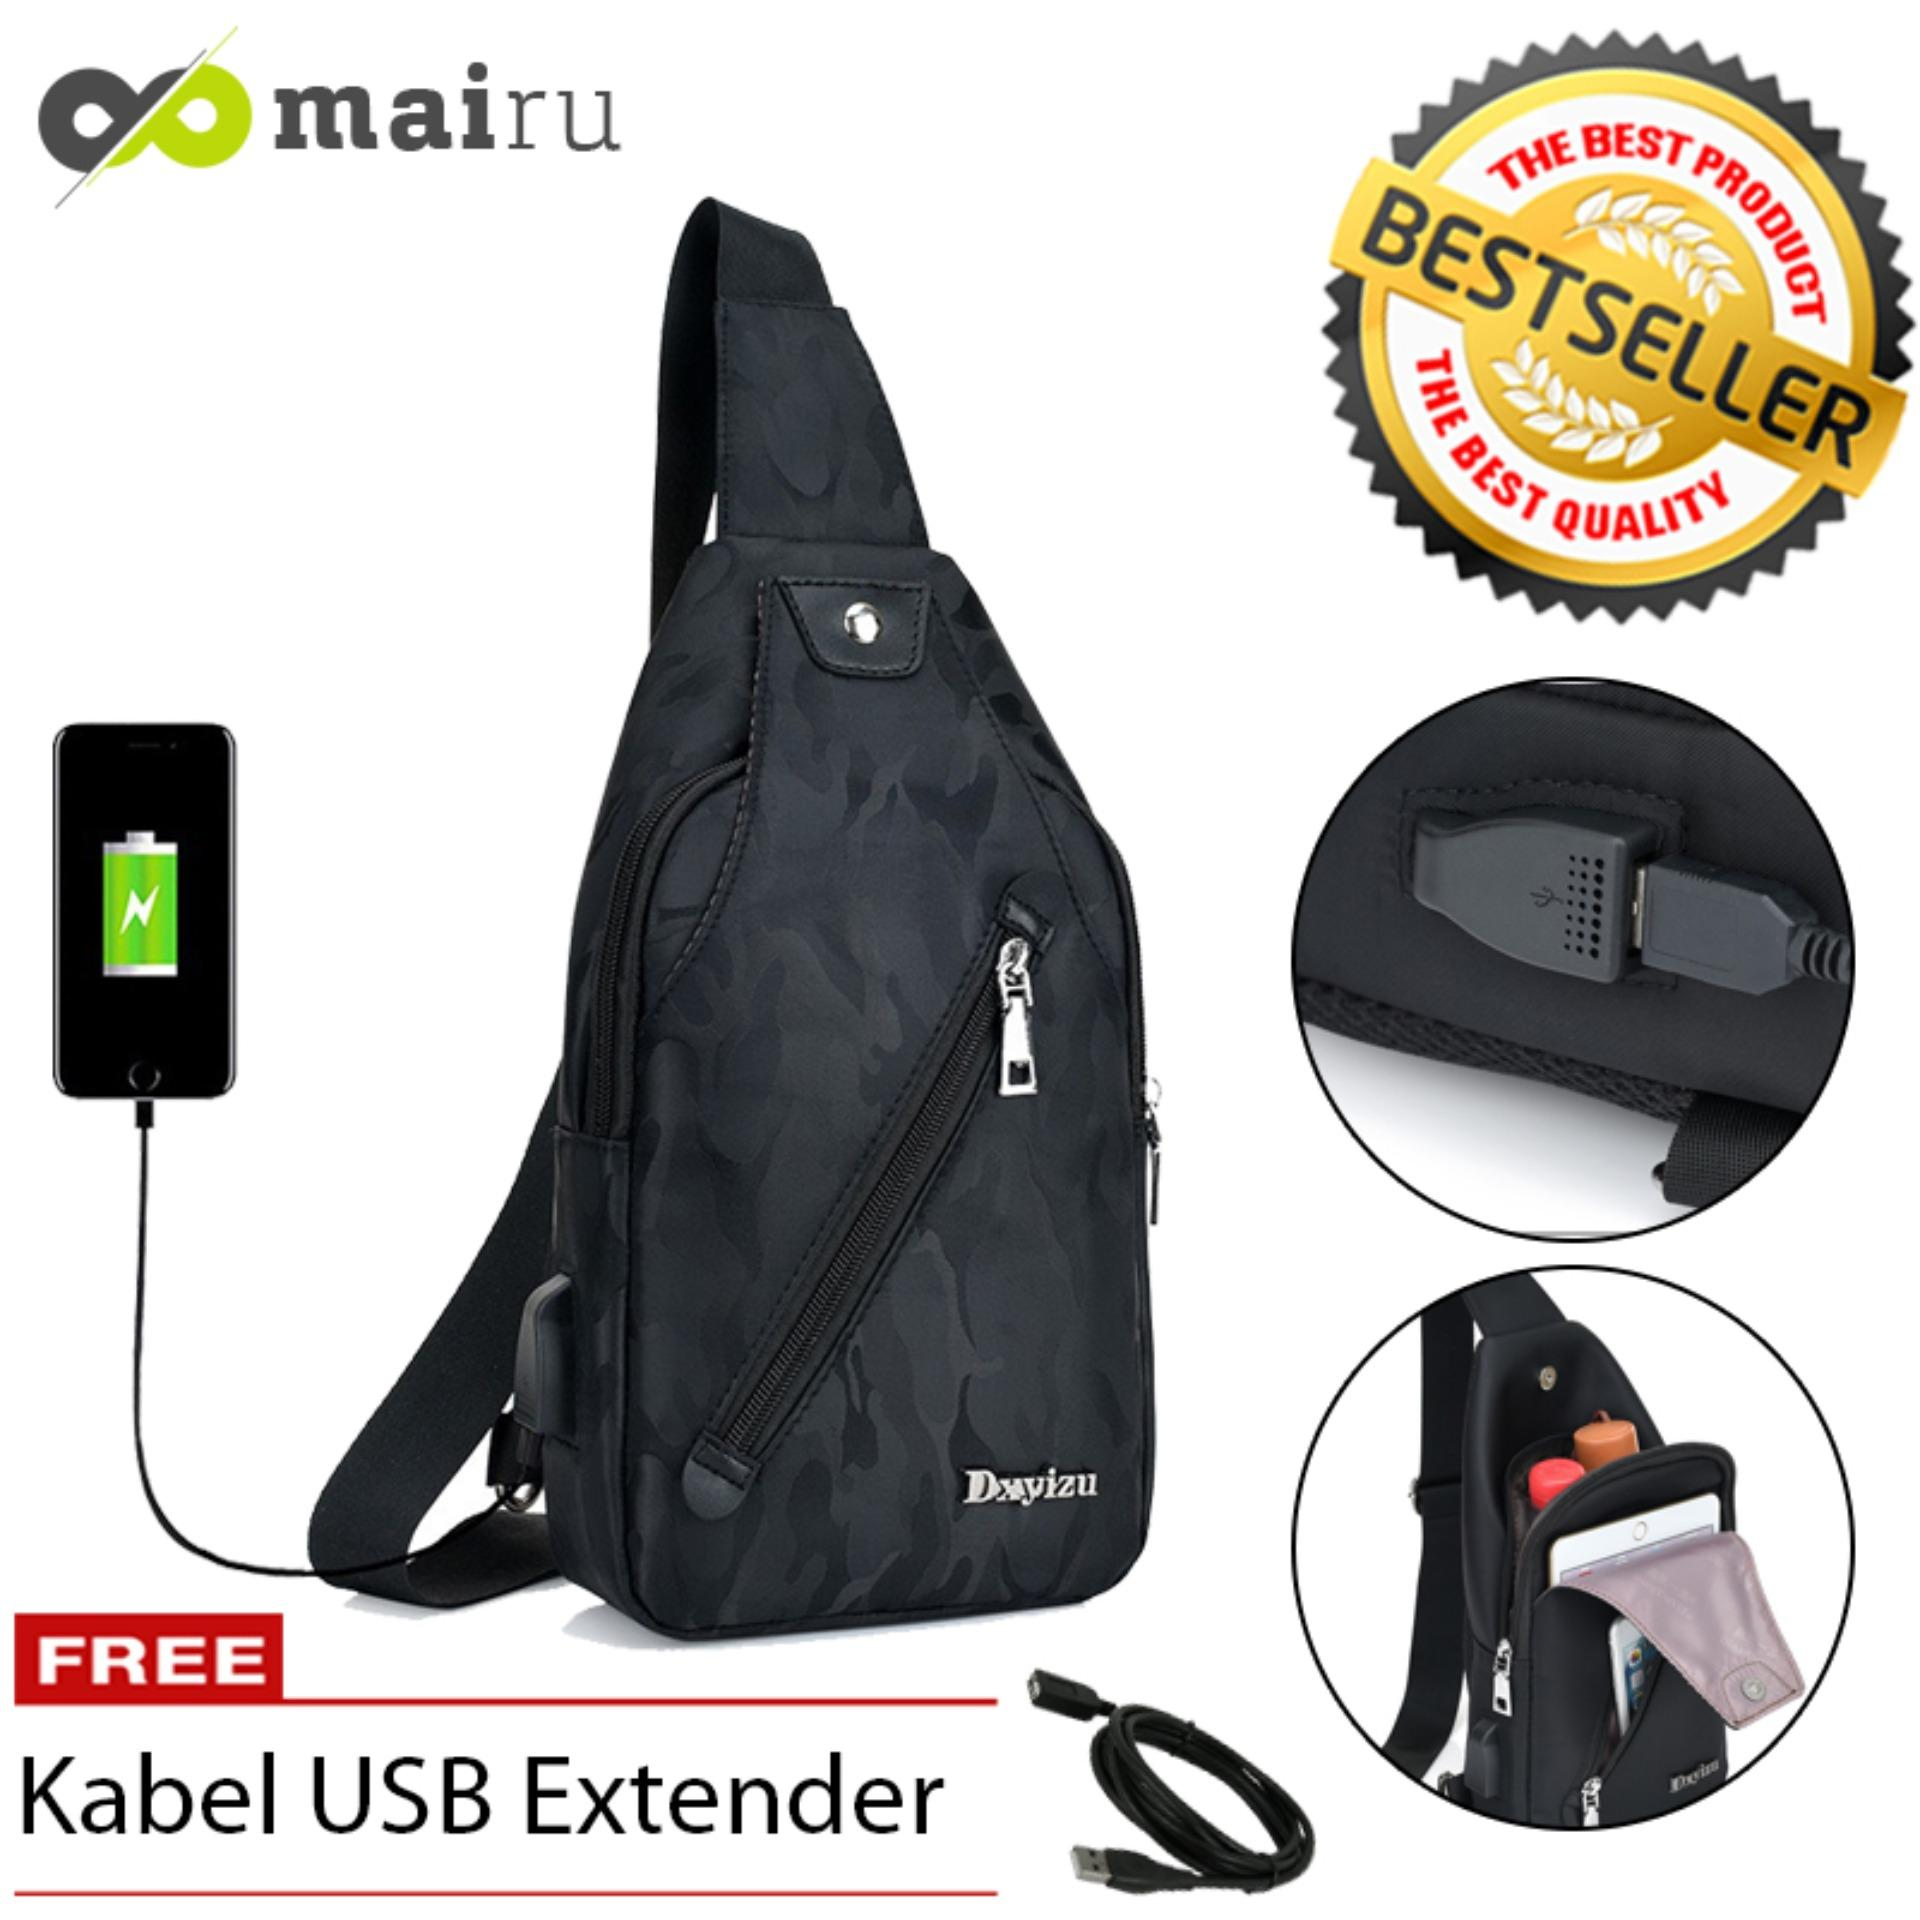 Beli Mairu Dxyizu 533 Tas Selempang Pria Sling Bag Cross Body With Usb Charger Support For Iphone Ipad Mini Xiaomi Samsung Tab Tablet 8 Anti Theft Yang Bagus